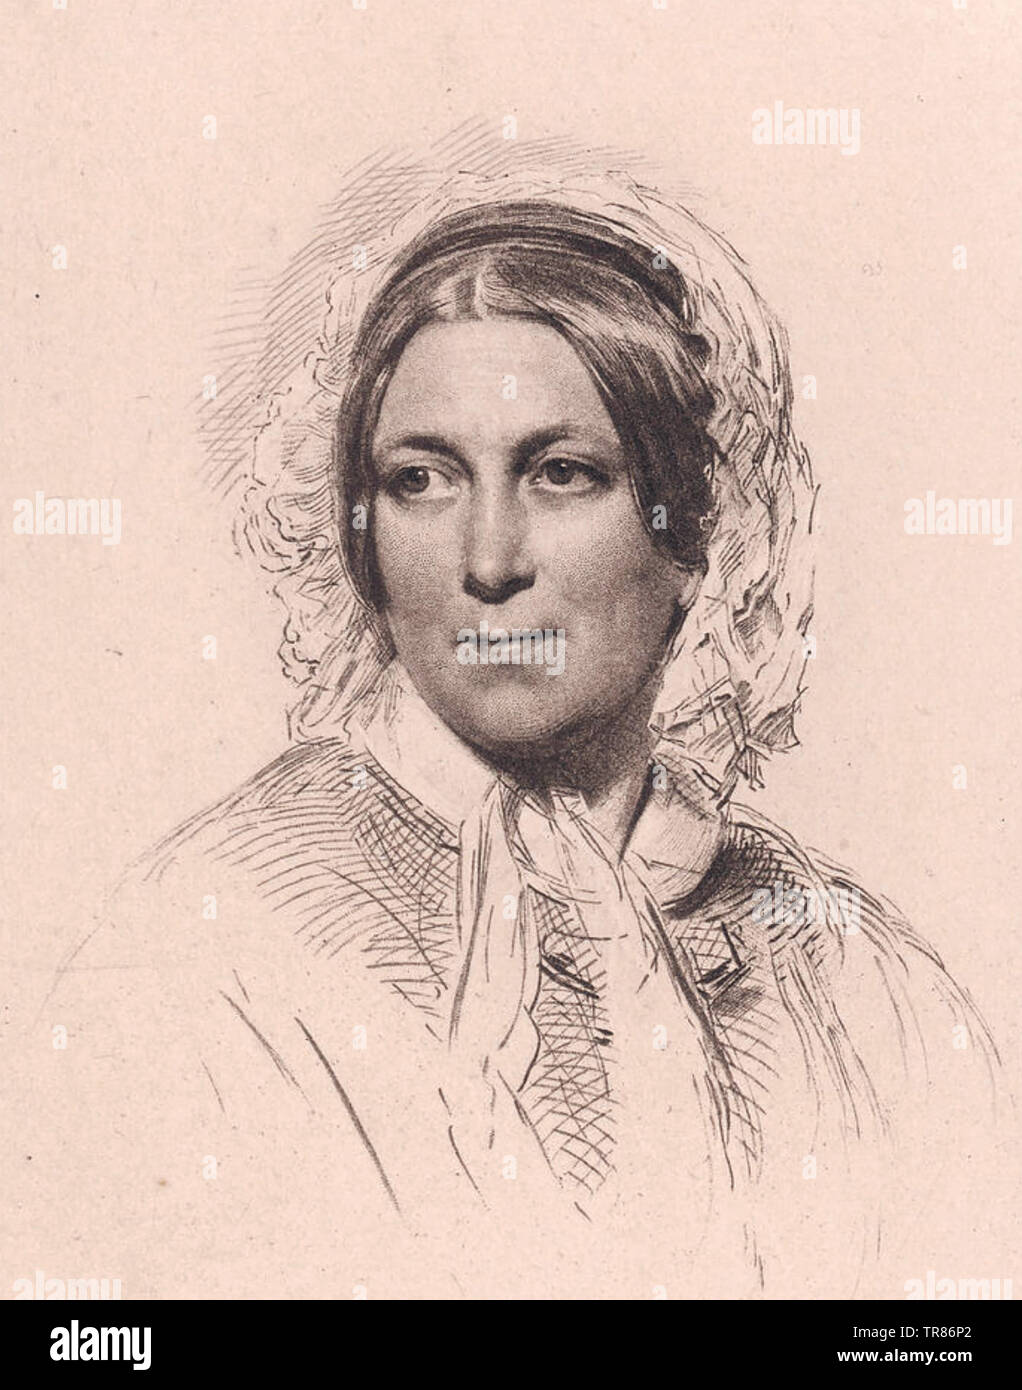 HARRIET MARTINEAU (1802-1876) English social theorist about 1840 - Stock Image